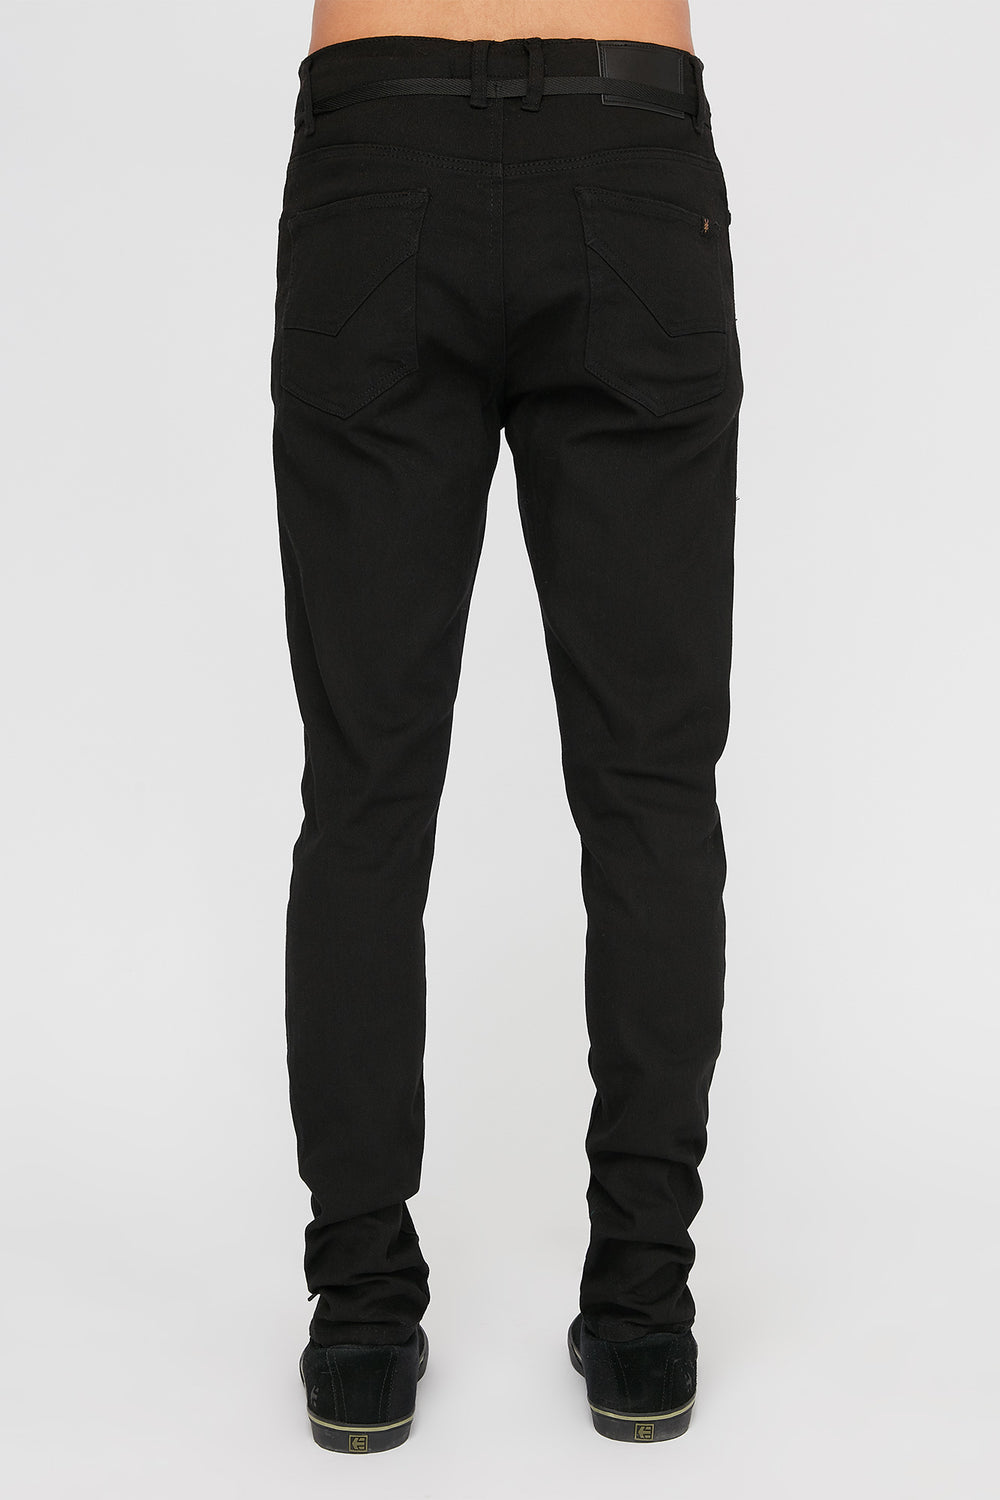 Zoo York Mens Stretch Skinny Jeans Black